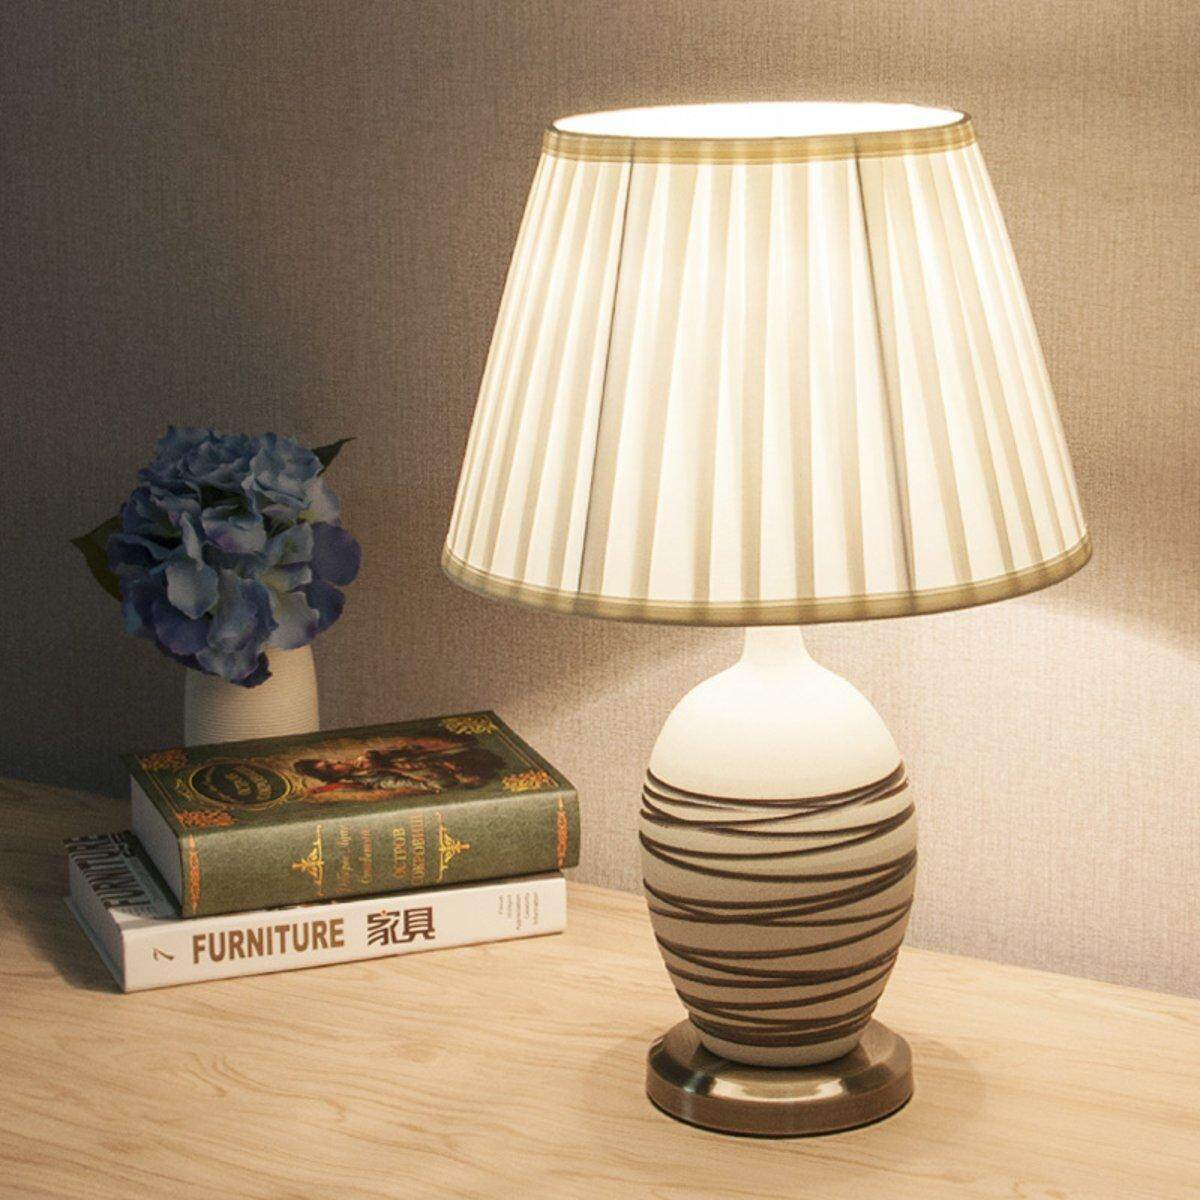 6 To 20 Fabric Box Pleat Lamp Shade Table Light Lampshade Mink Cream Ivory  450mm By Glimmer.